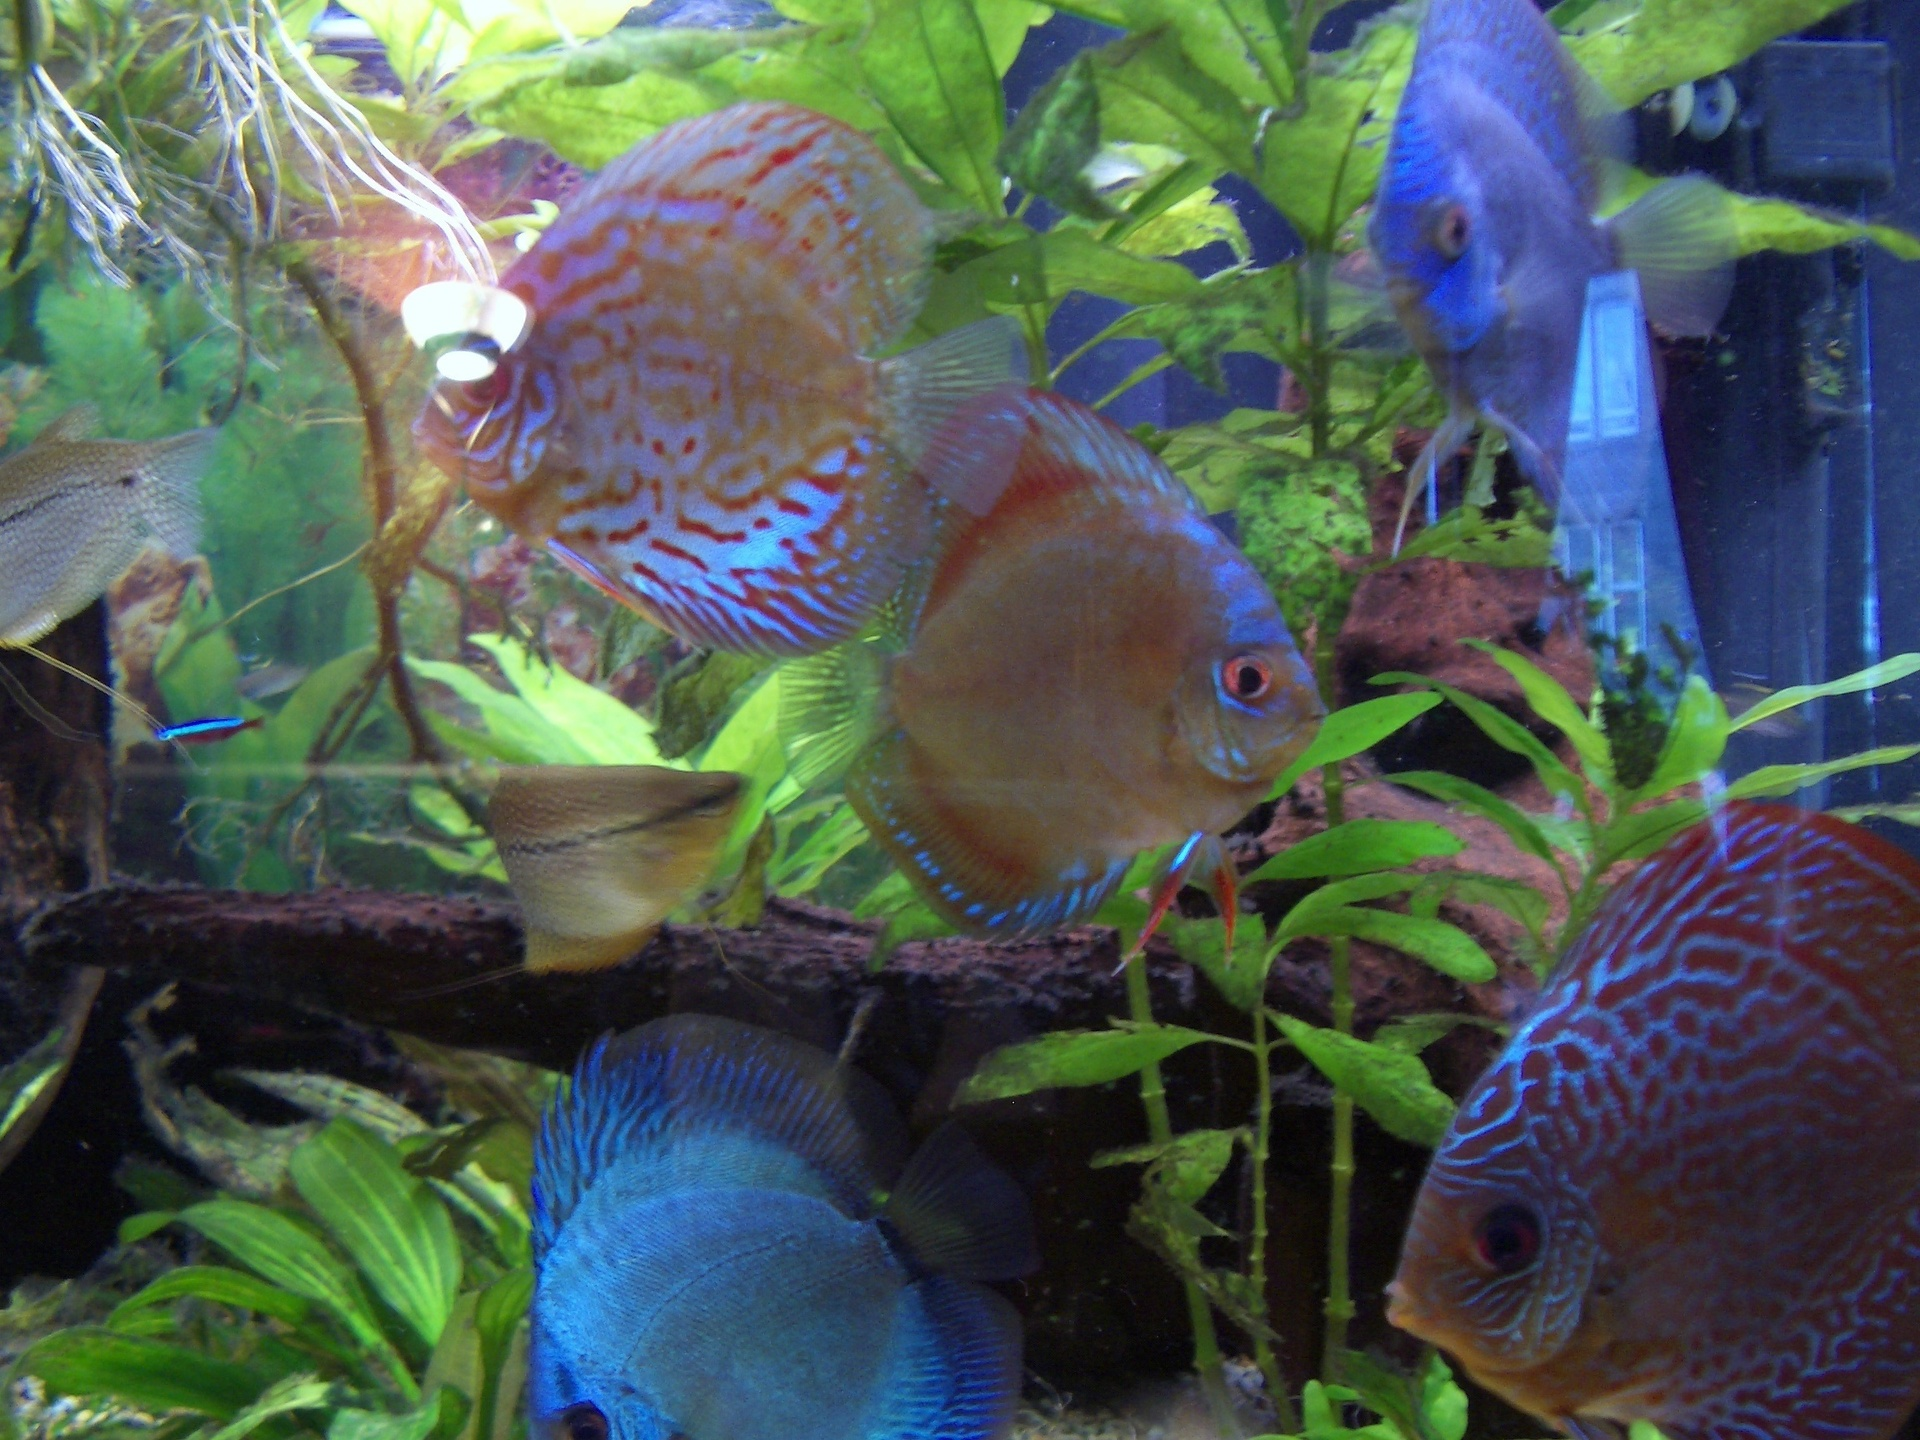 Click here to learn more about Discus fish aquarium